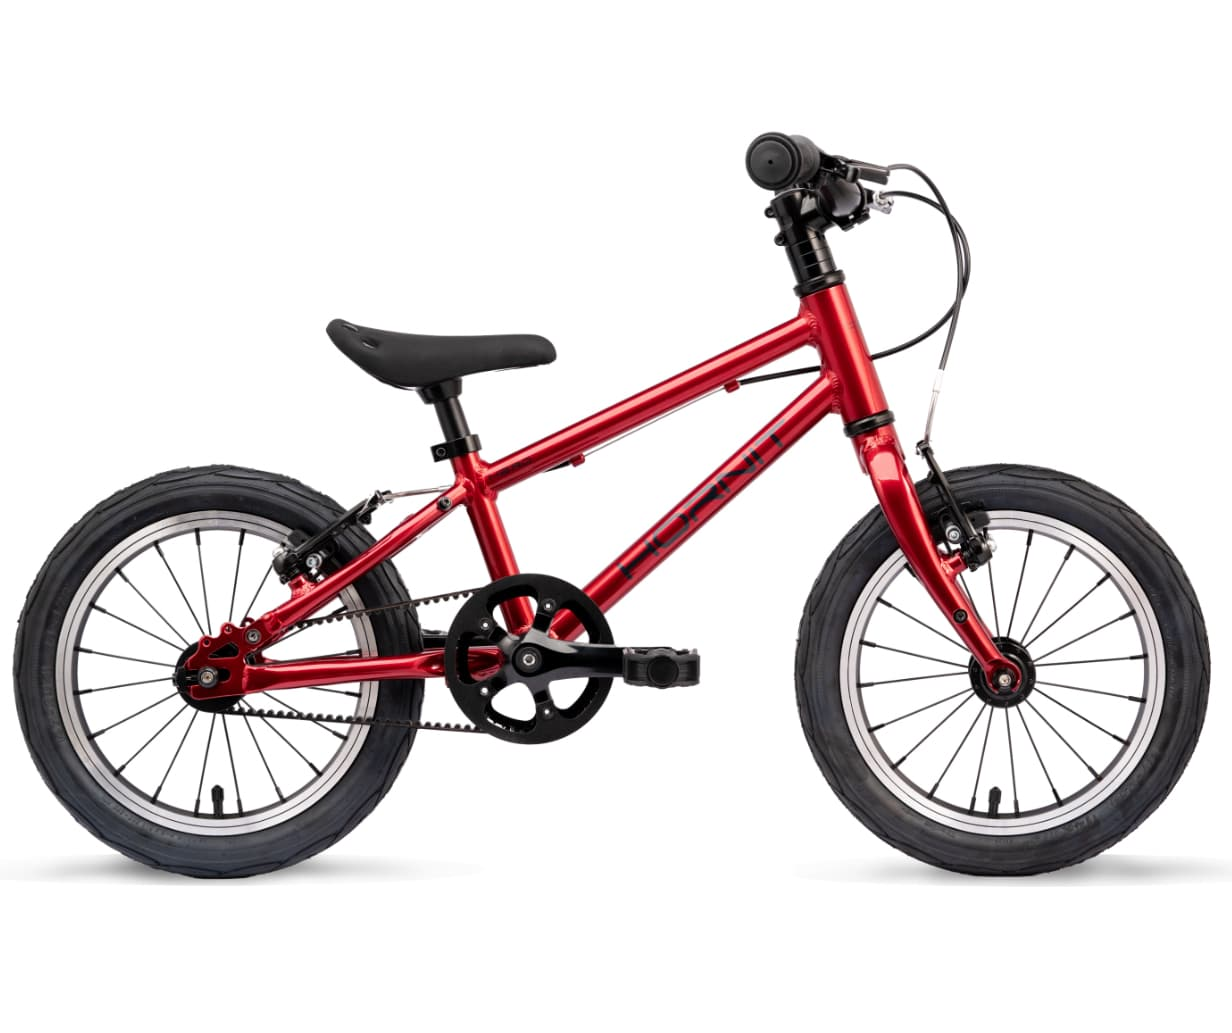 Hornit Hero 14 - a belt driven starter bike for a 3 year old